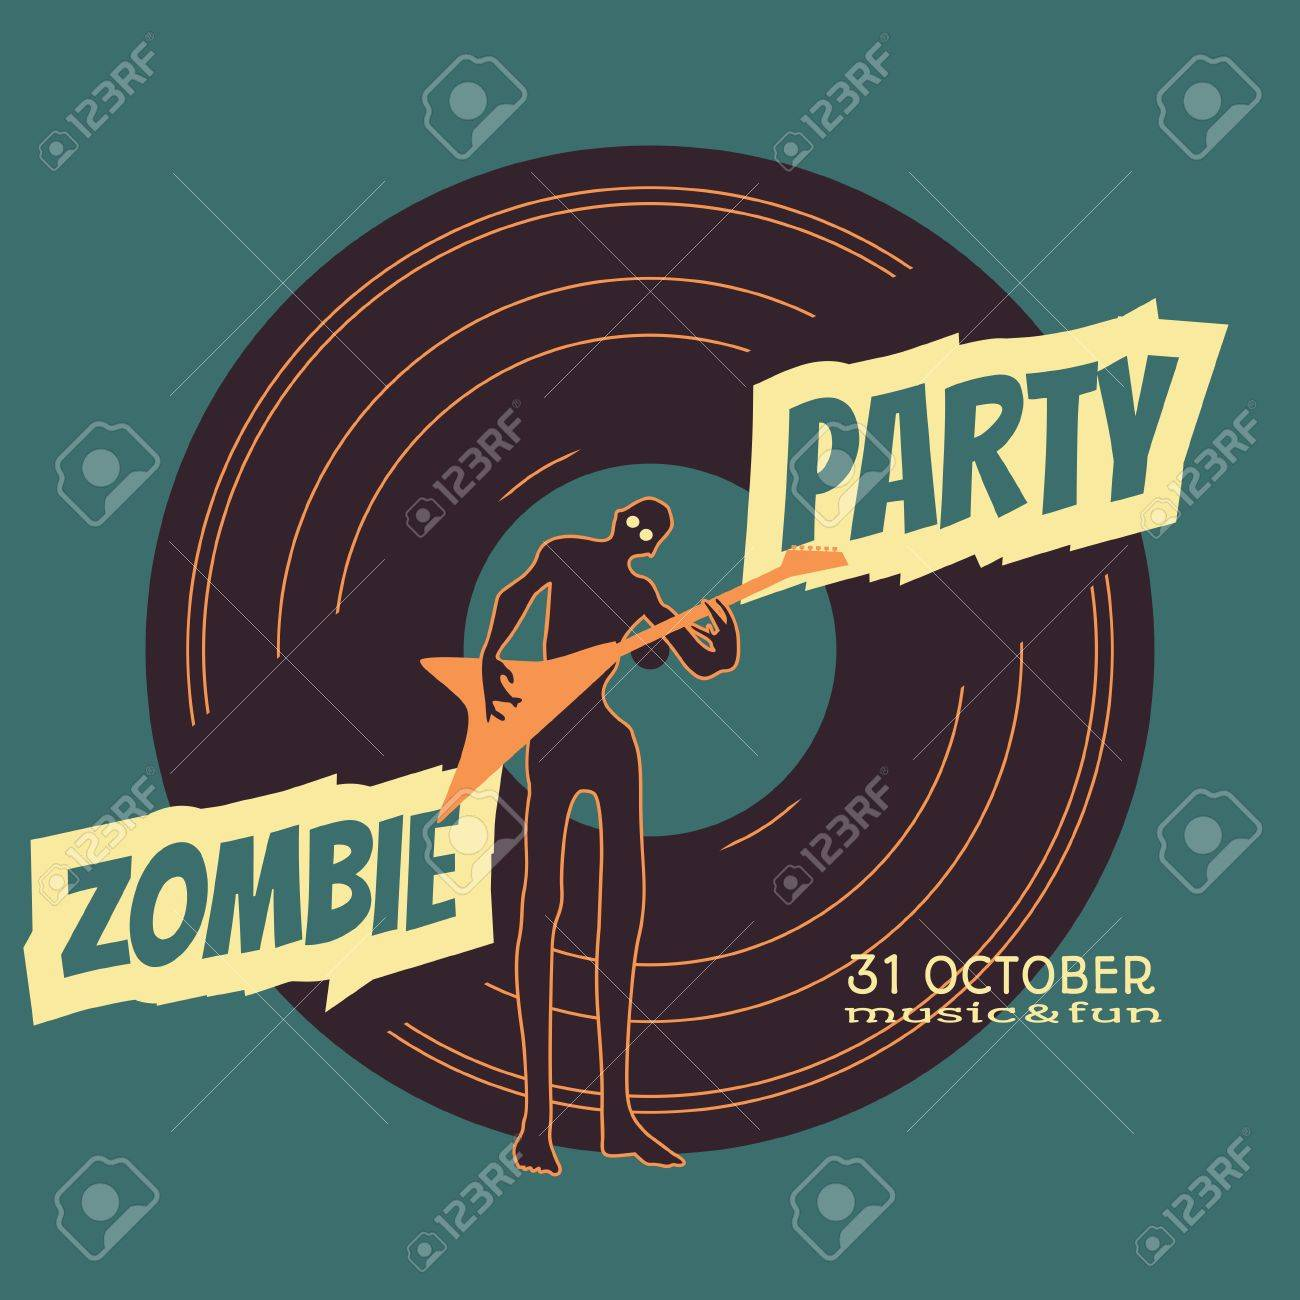 zombie party text and silhouette on vynil record backdrop. undead